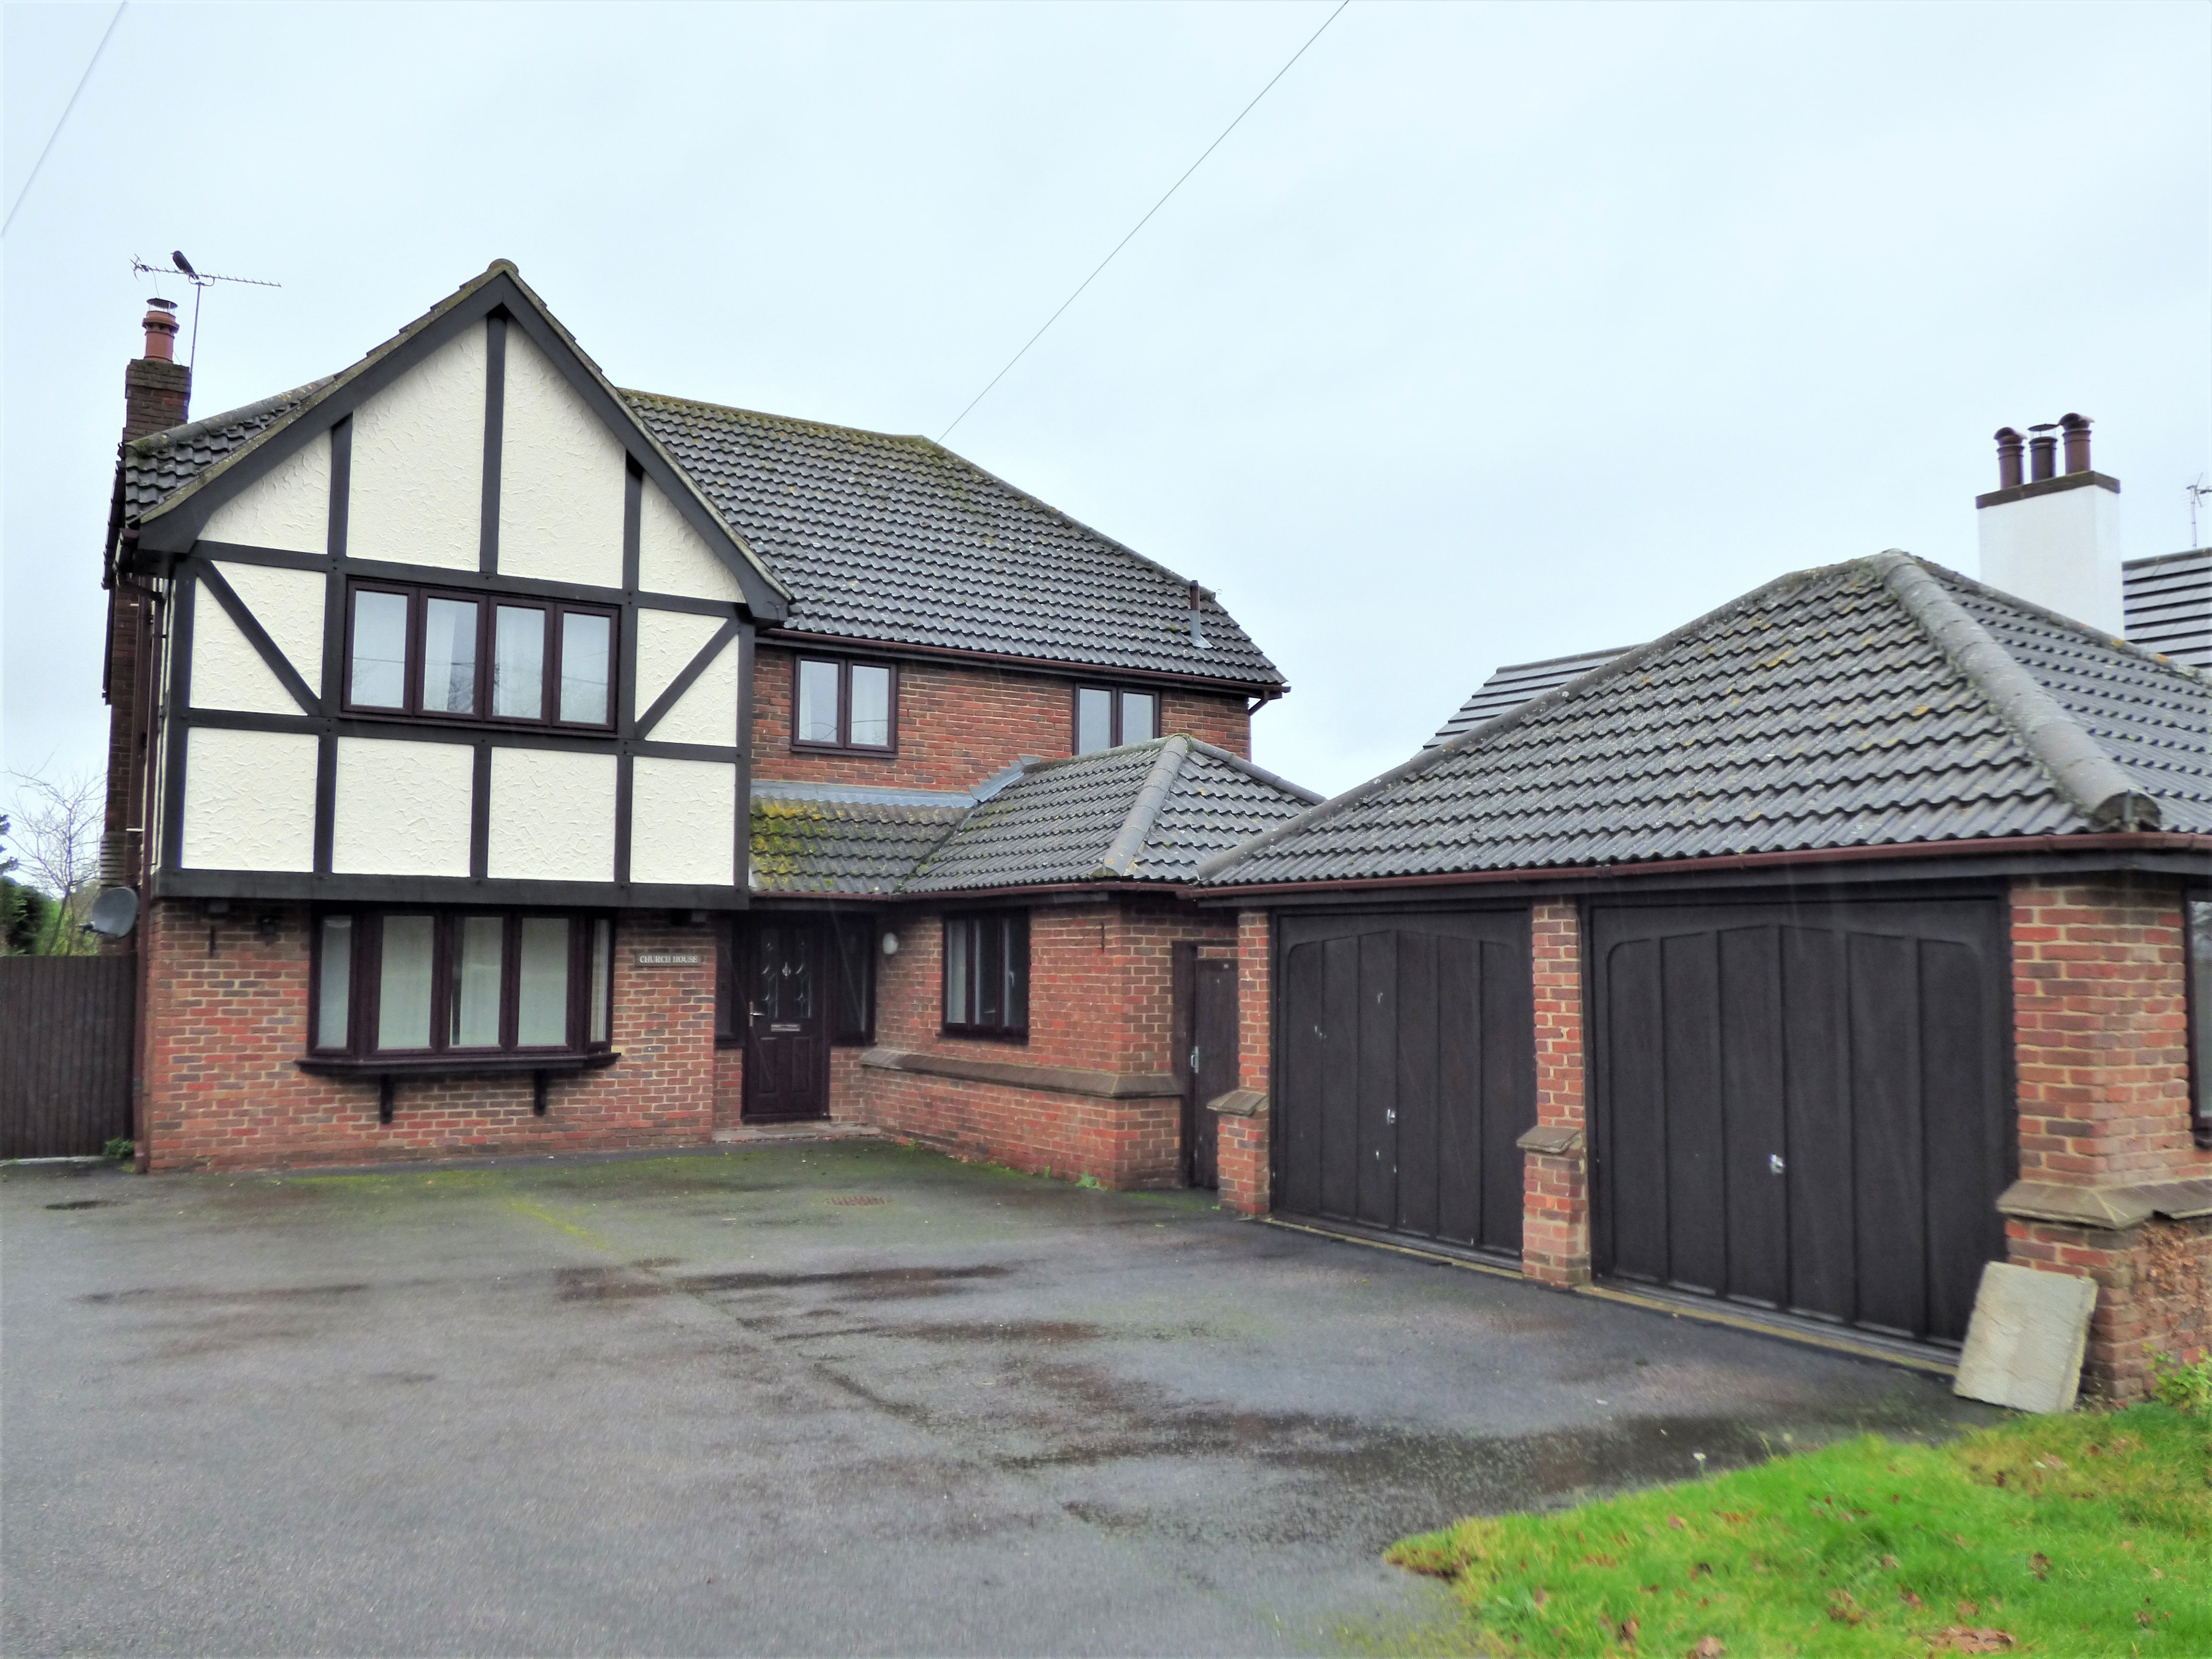 4 bed house to rent in Main Road, Bicknacre - Property Image 1